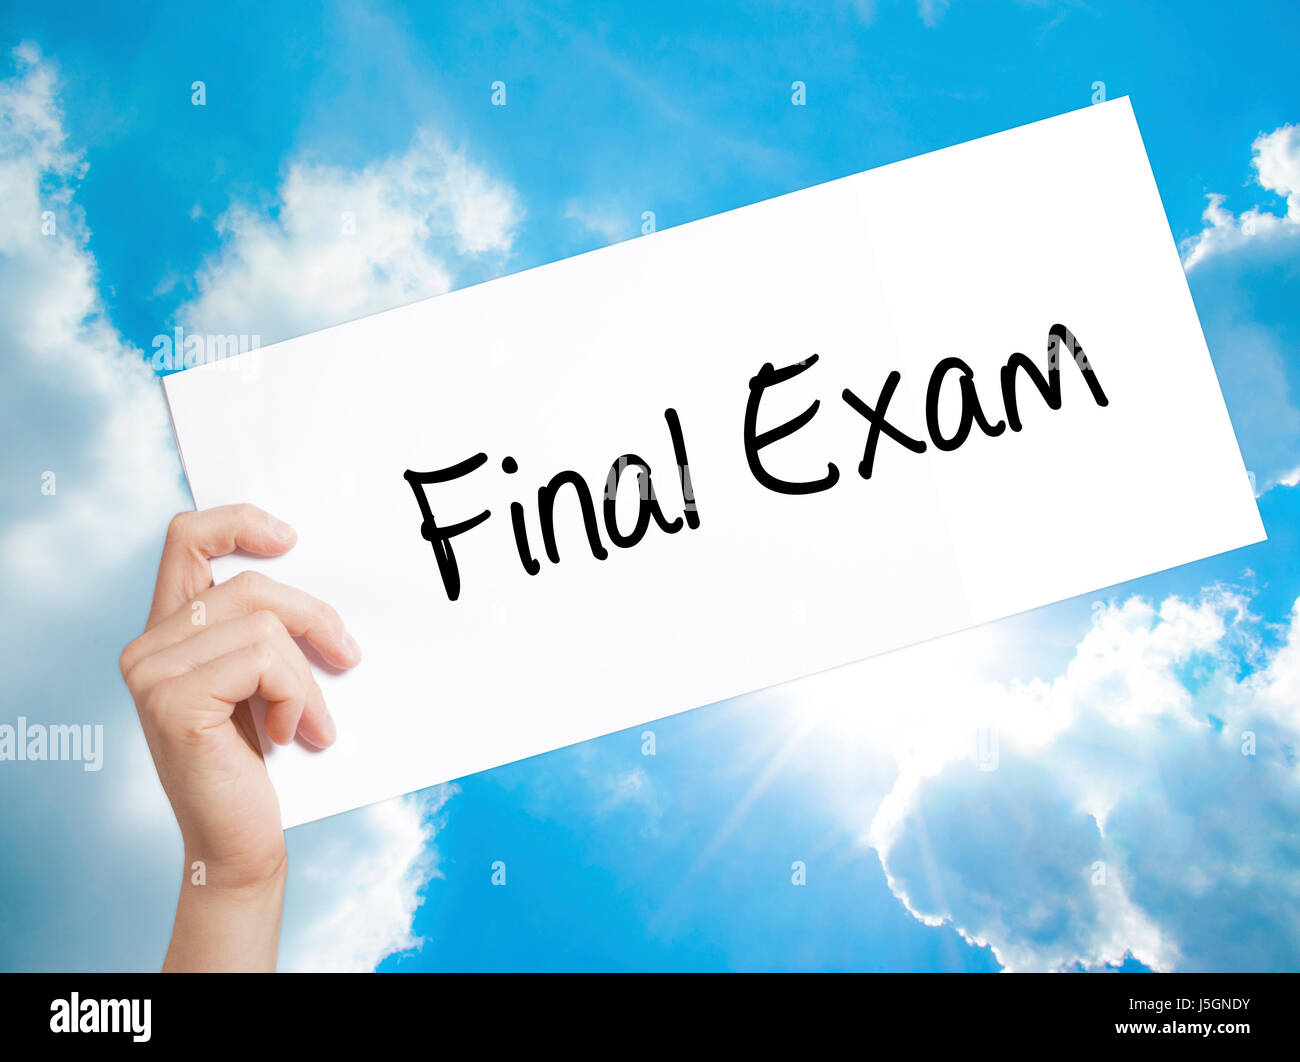 Final Exam Stock Photos & Final Exam Stock Images - Alamy